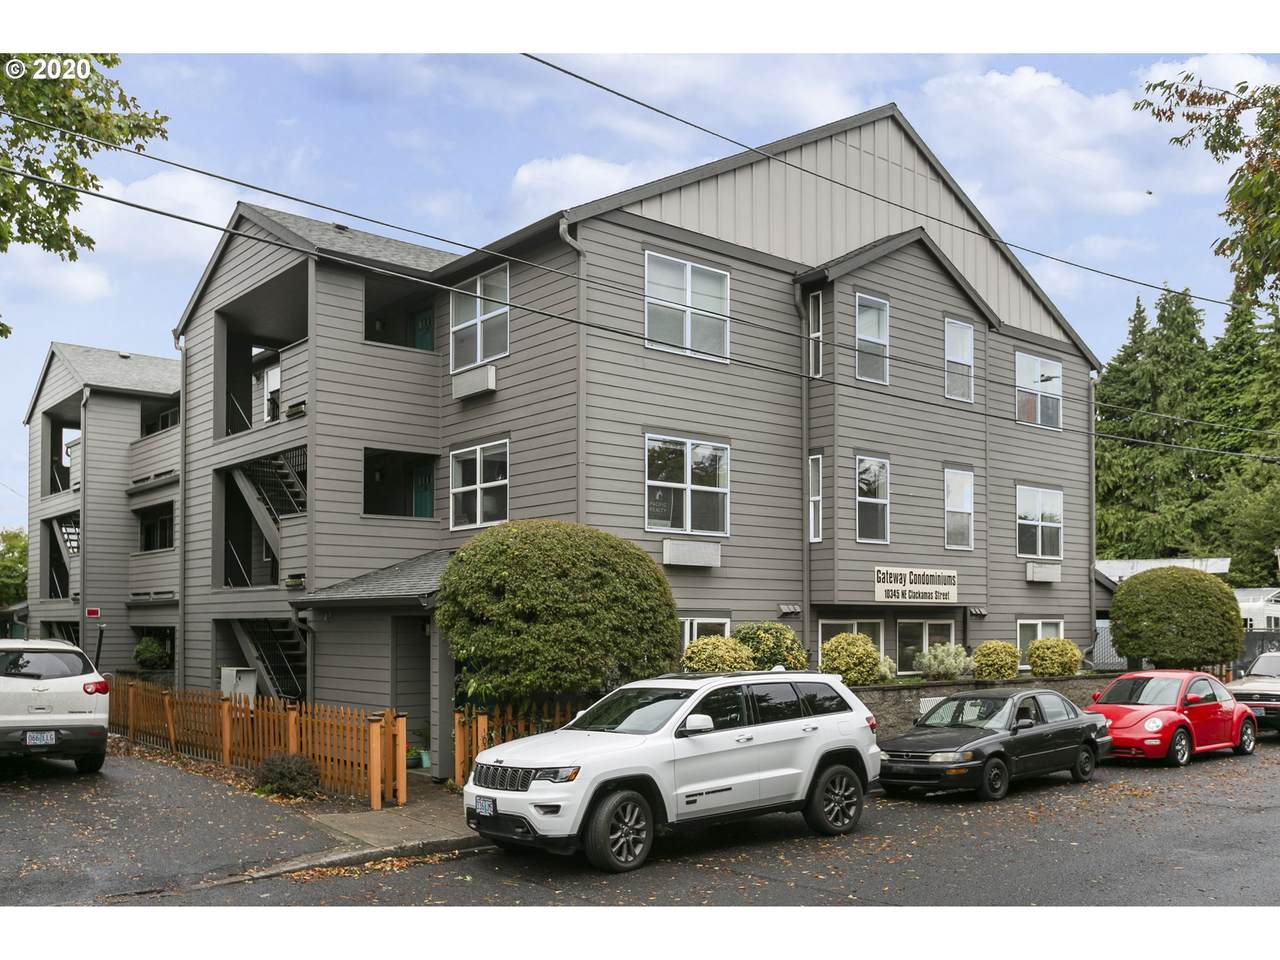 10345 Clackamas St - Photo 1